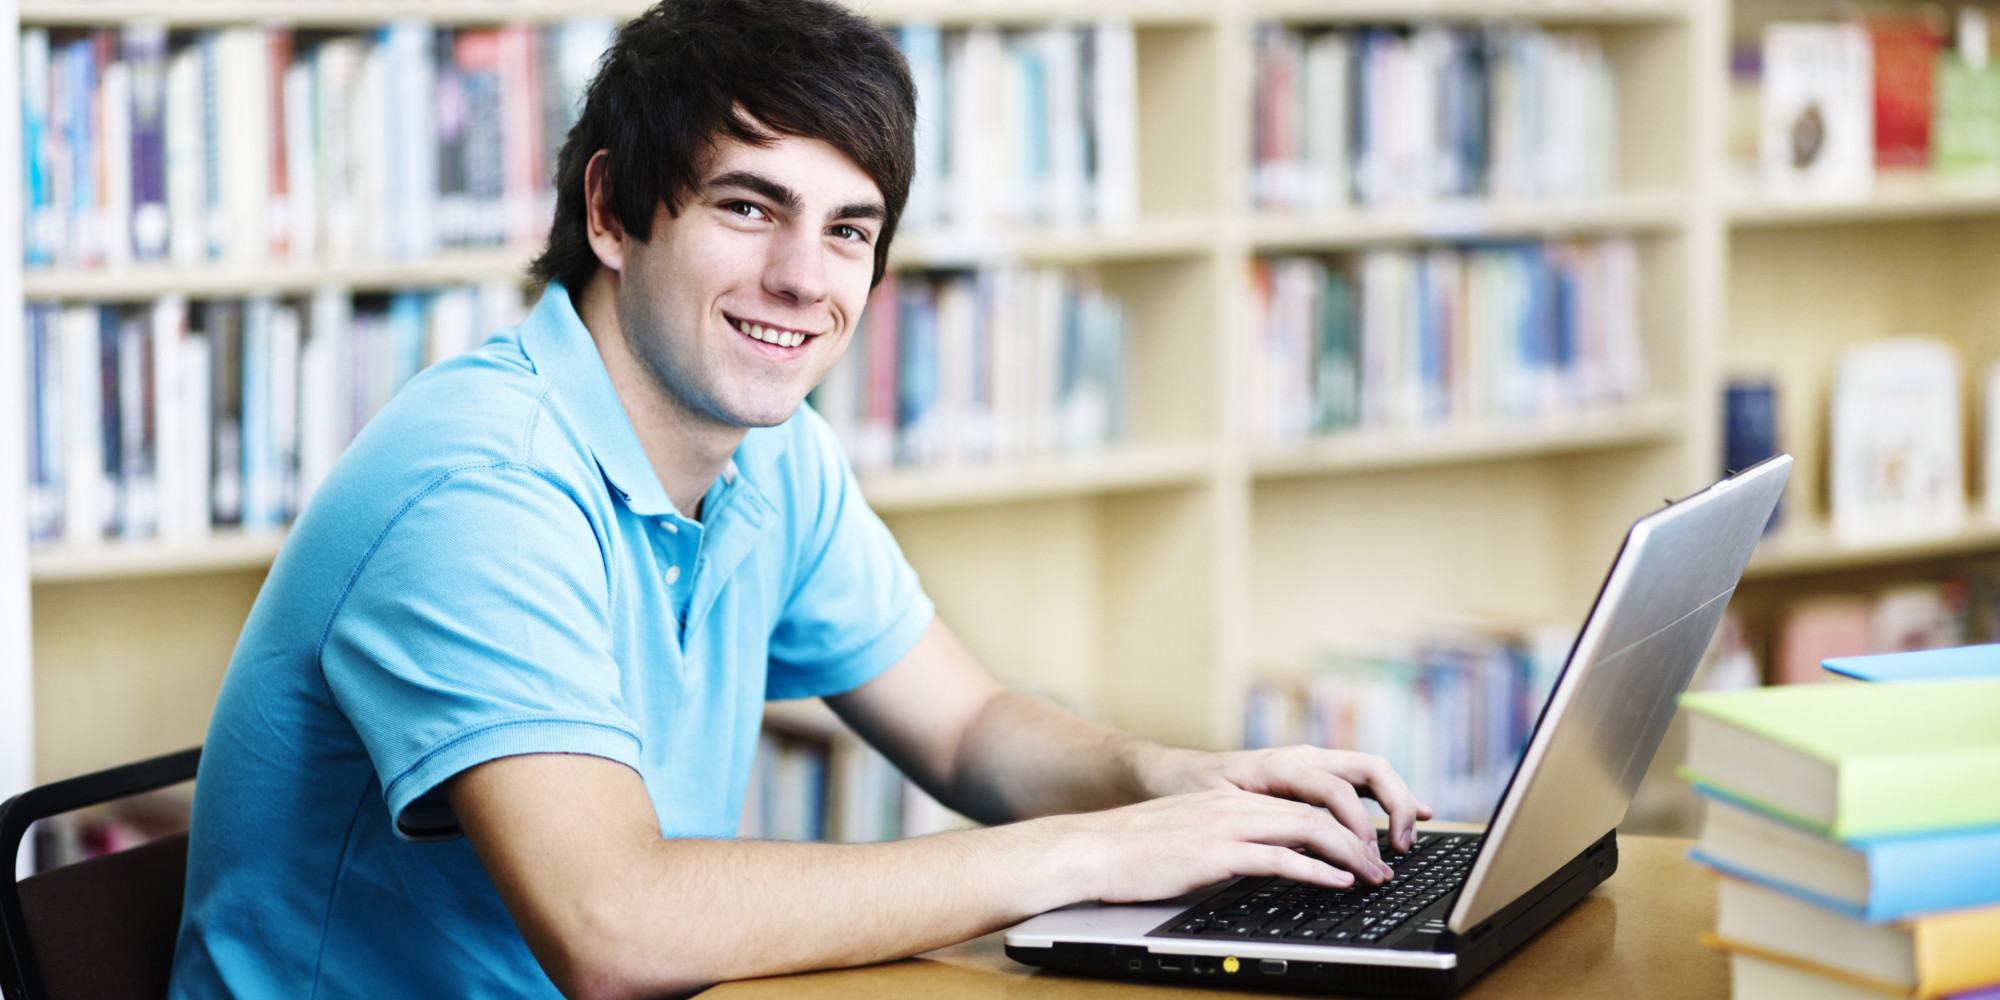 Handsome student smiles up from laptop studies in library